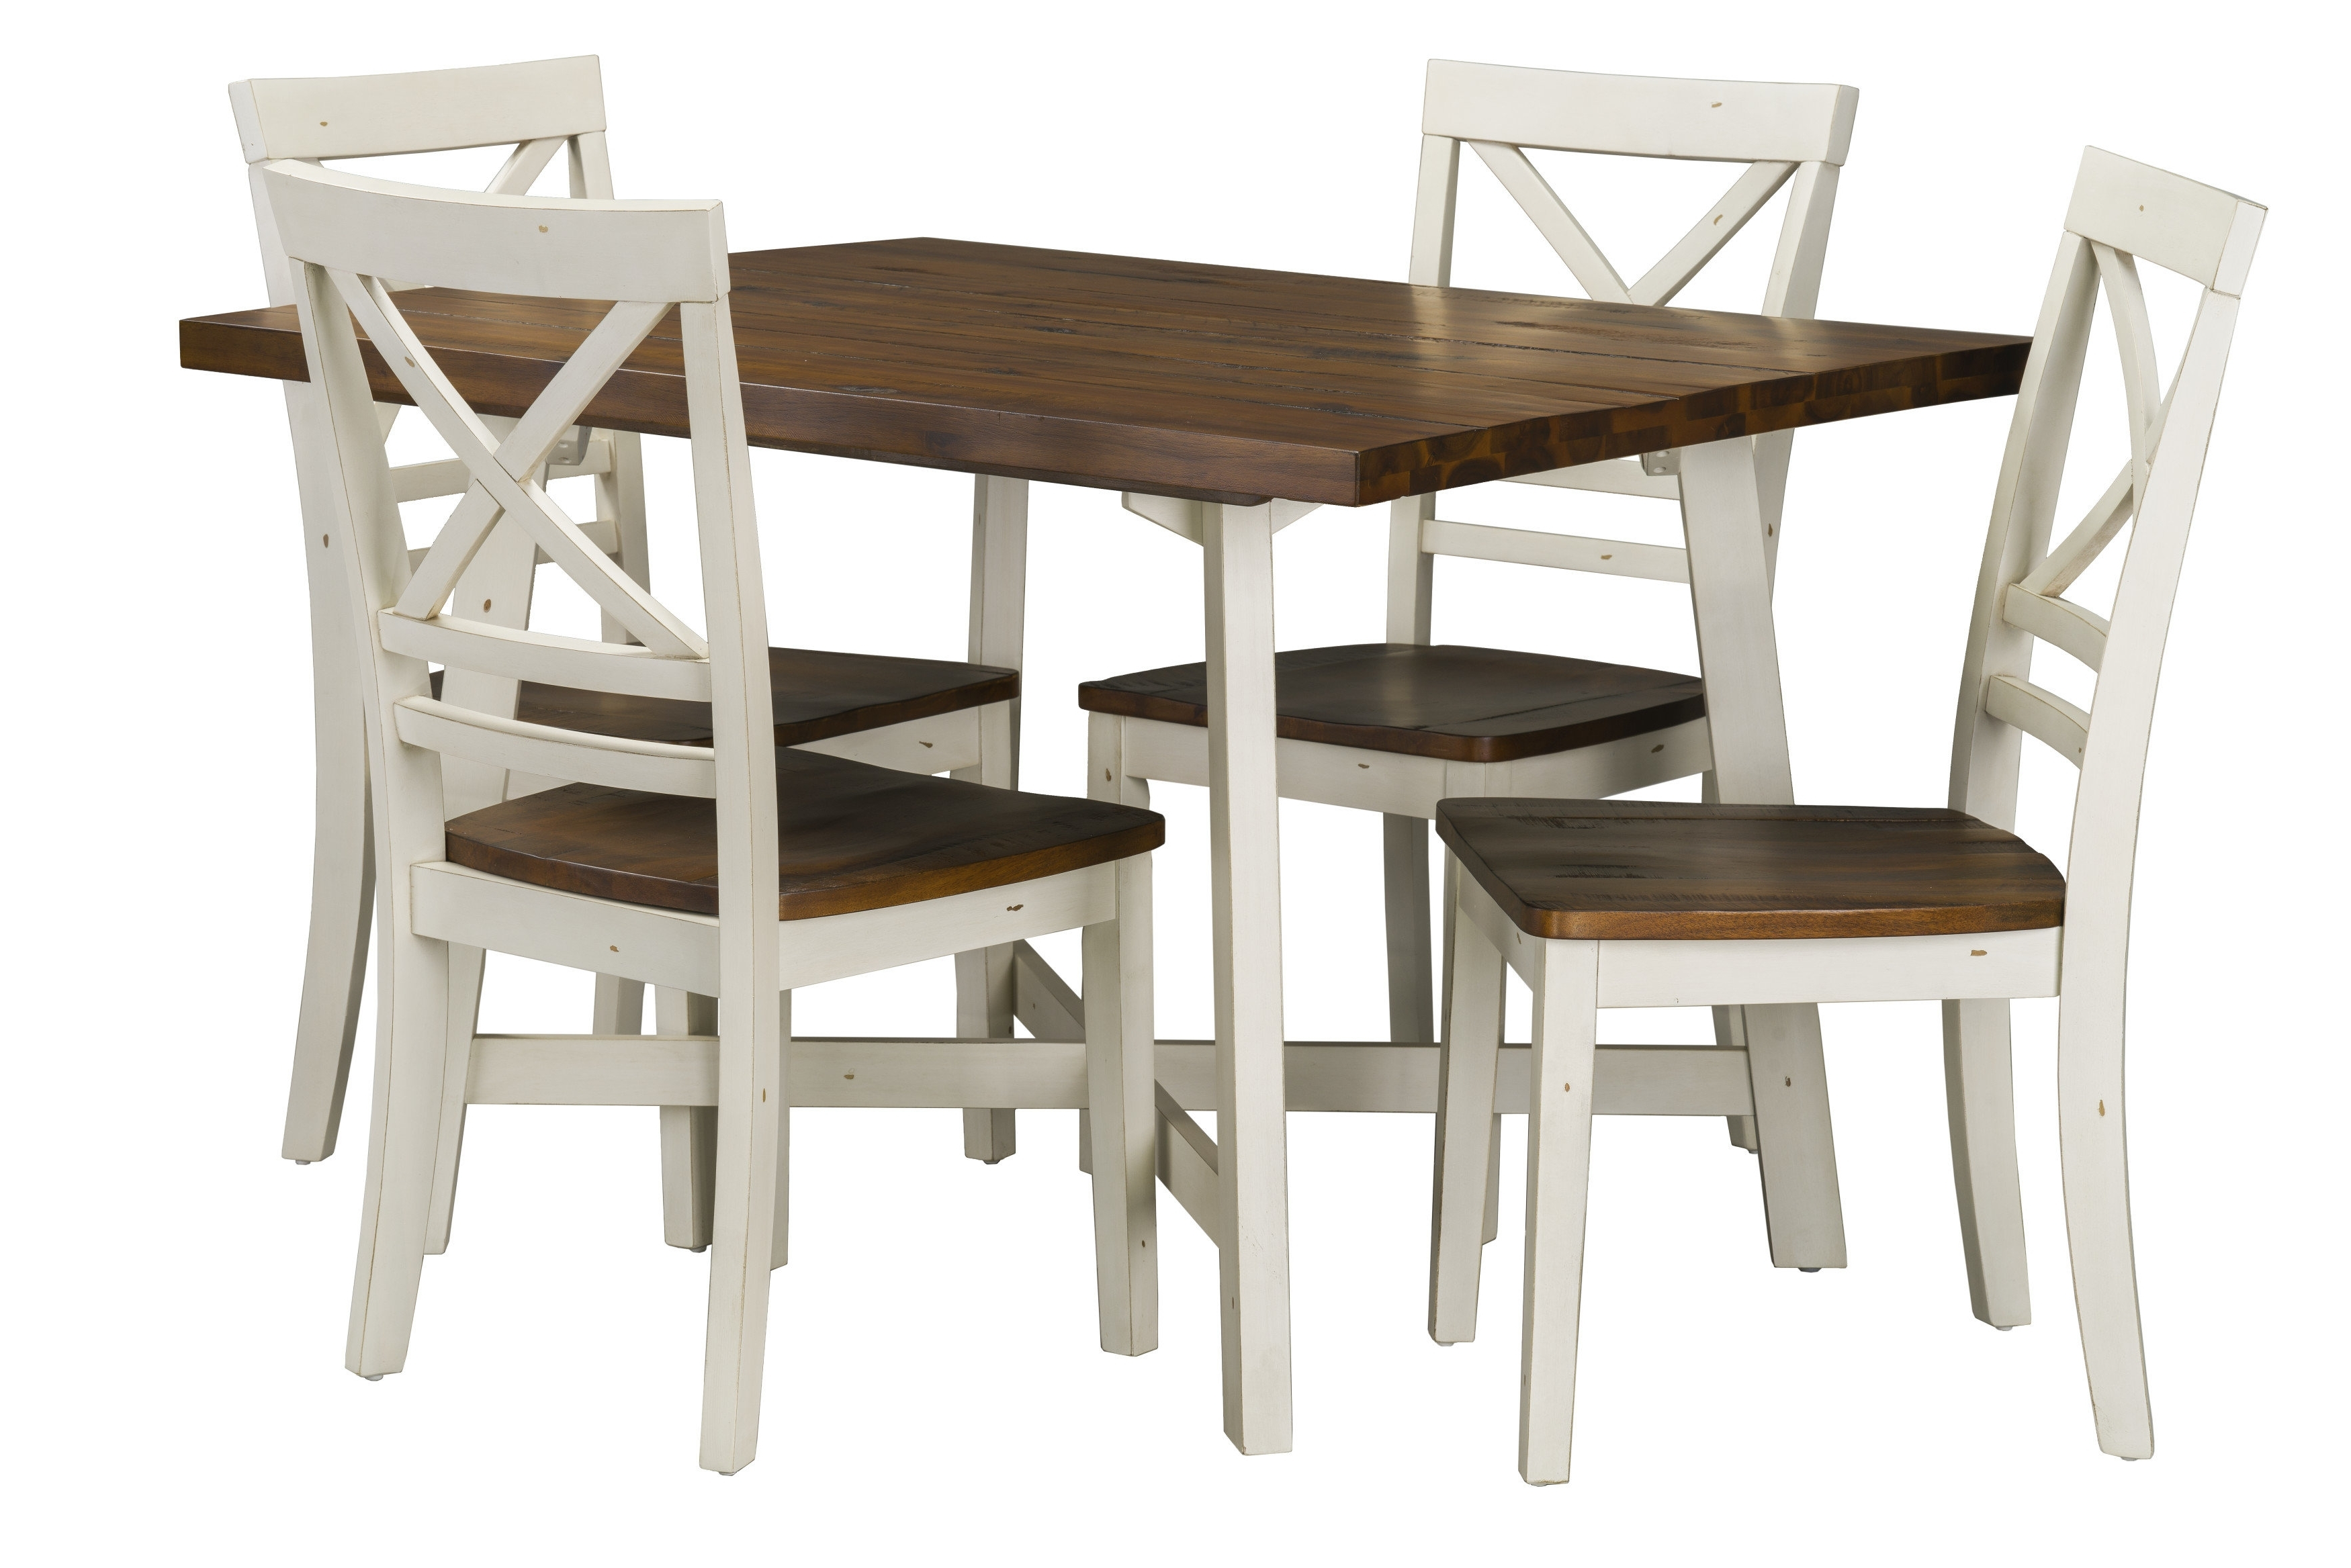 Cora 7 Piece Dining Sets Regarding Latest Dunnes 5 Piece Dining Set & Reviews (Gallery 7 of 25)